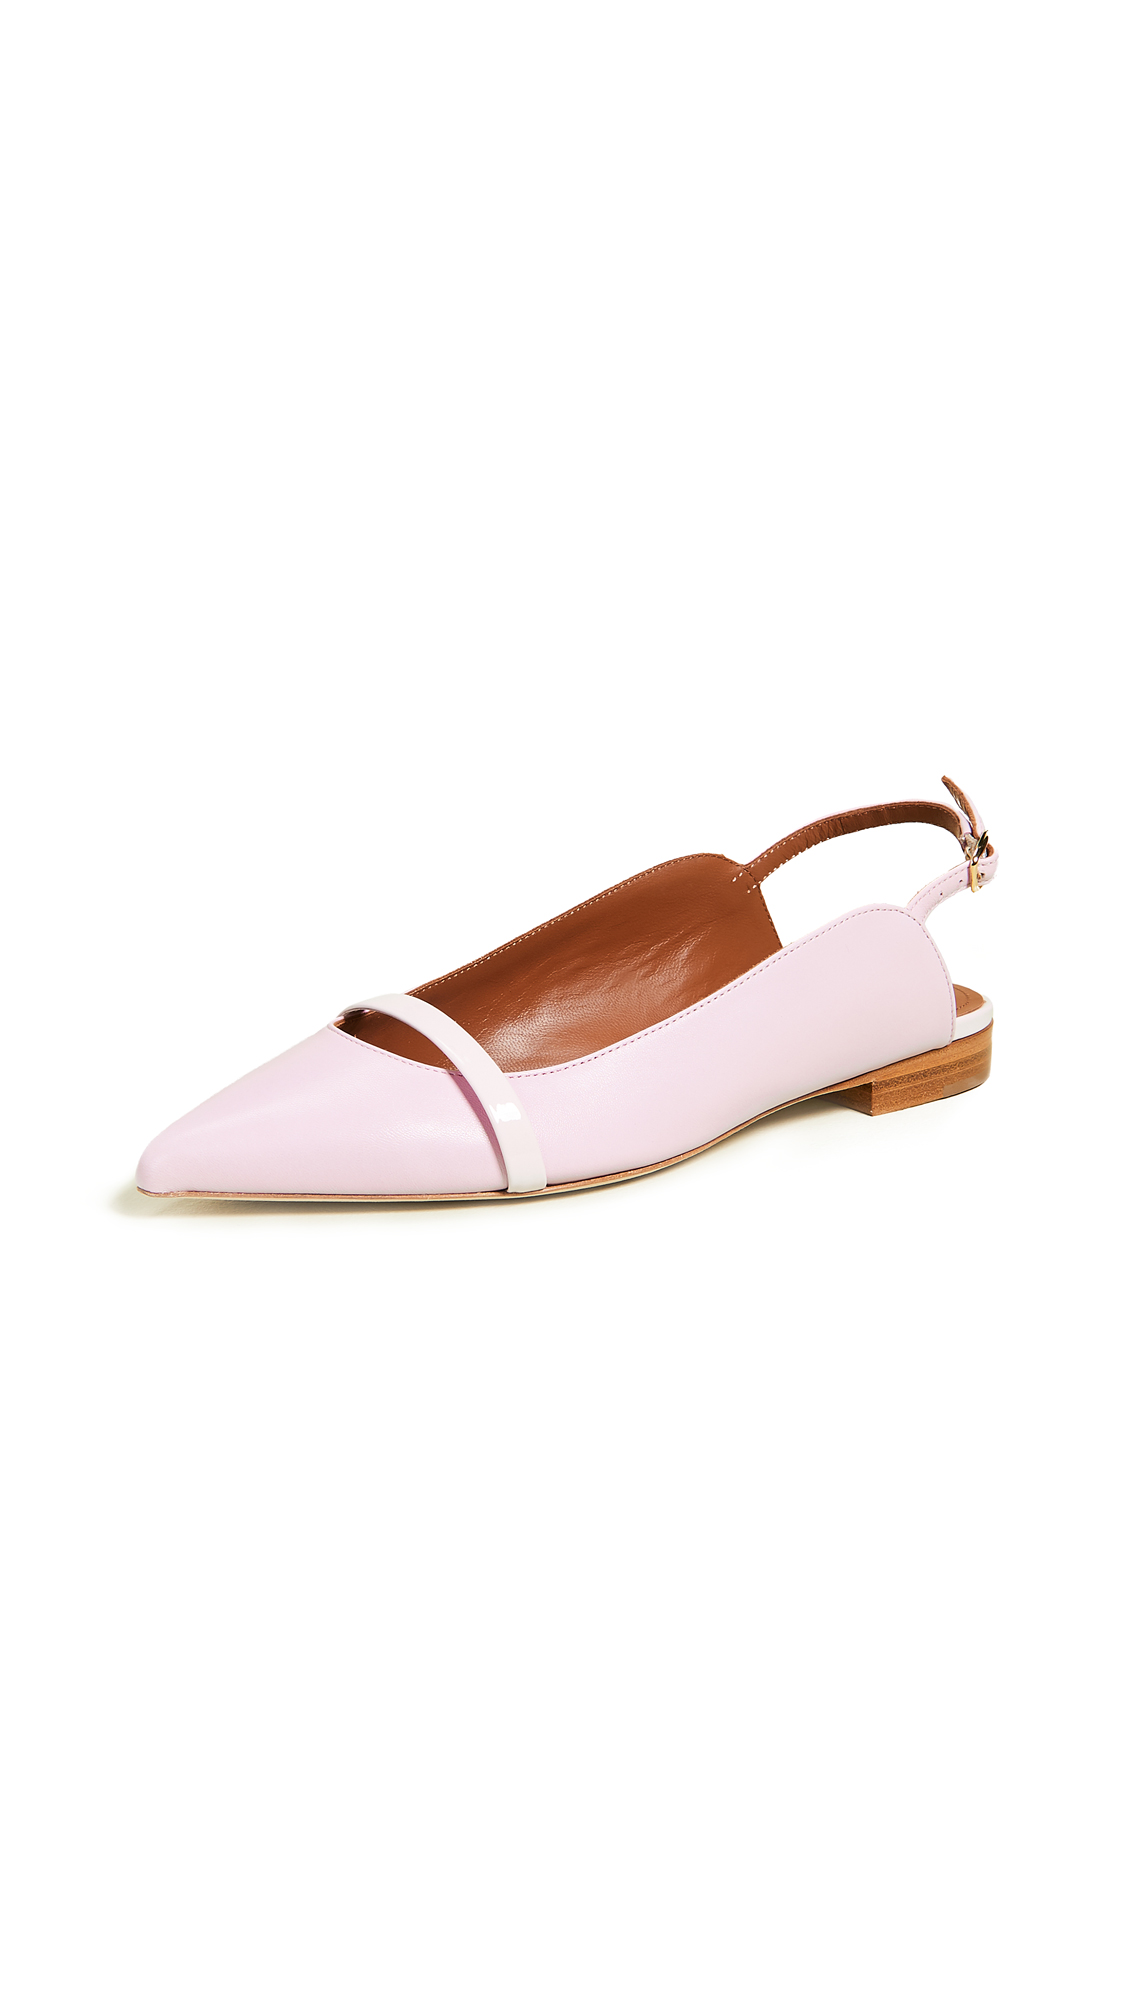 Malone Souliers Marion Slingback Flats - Pink/Baby Pink